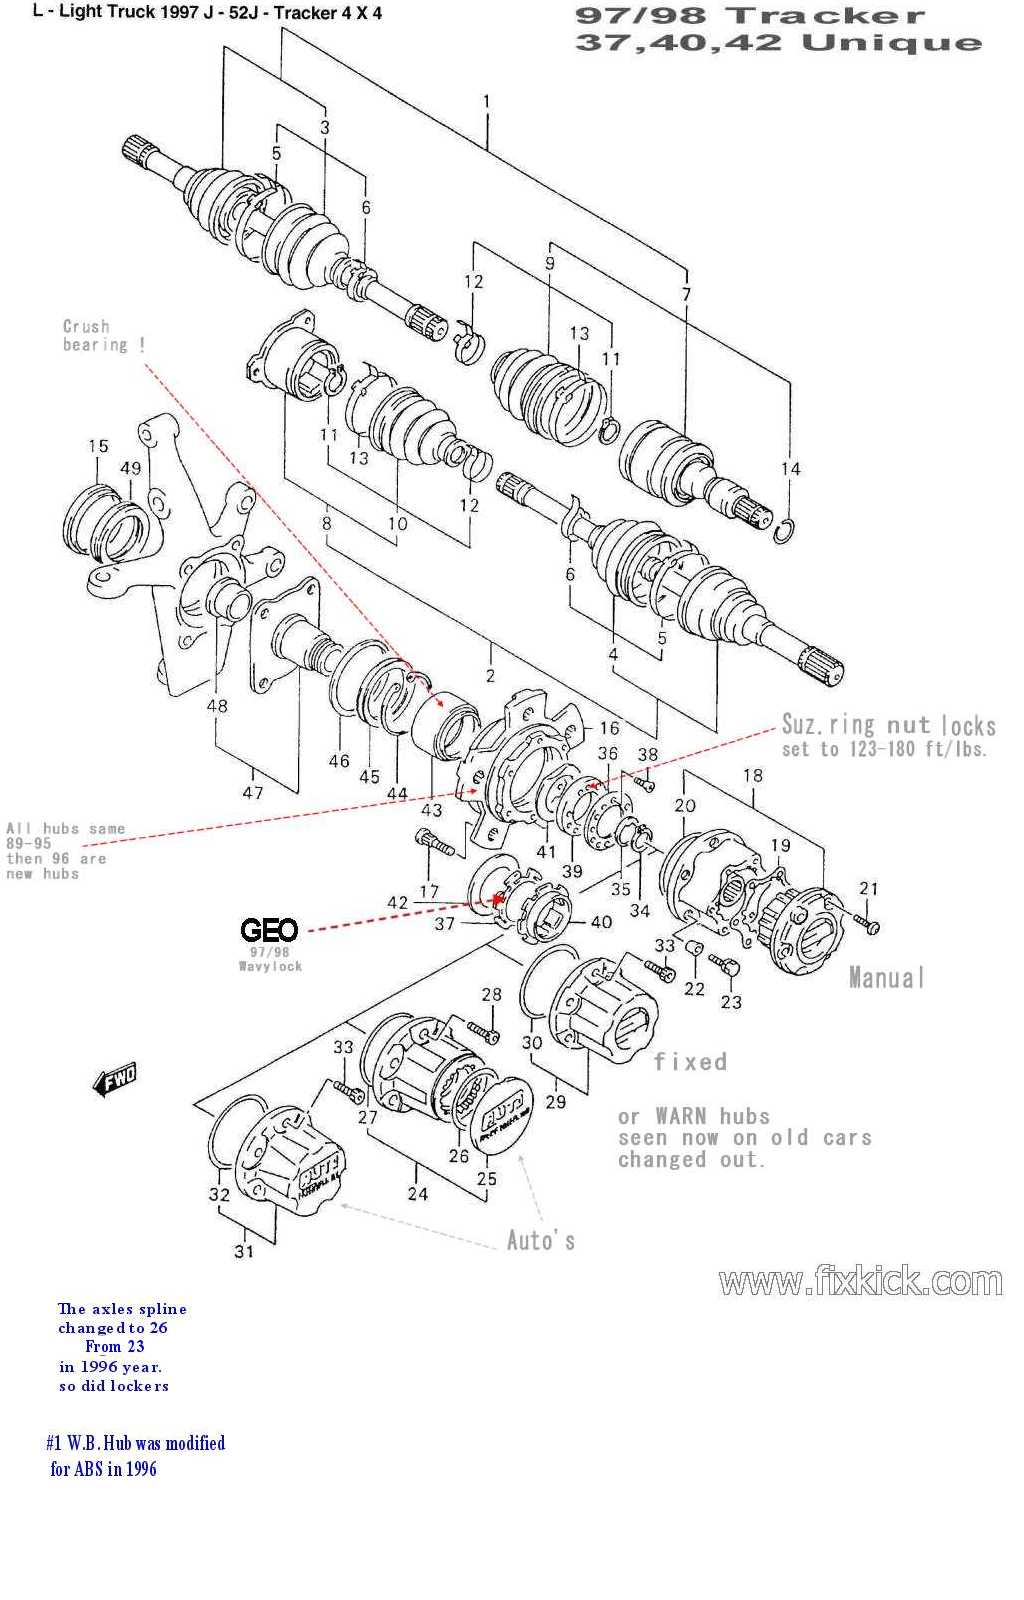 1996 Geo Tracker Wiring Diagram Manual Trans Library 1993 Http Fixkickcom Hubs 97 98spindle Locs